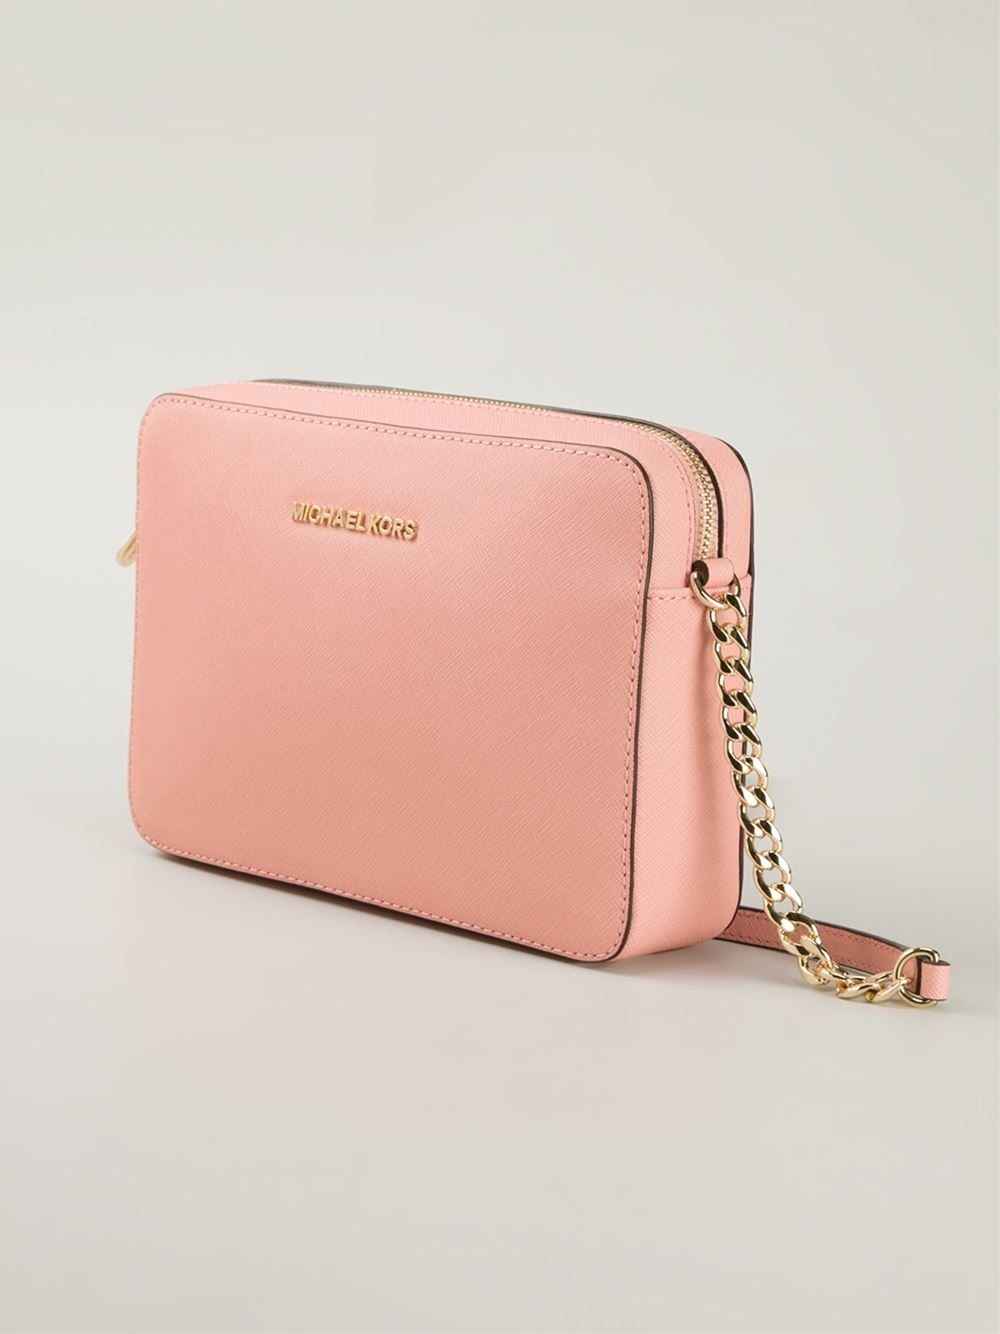 a77c3d2c123325 MICHAEL Michael Kors Jet Set Travel Cross-Body Bag in Pink - Lyst